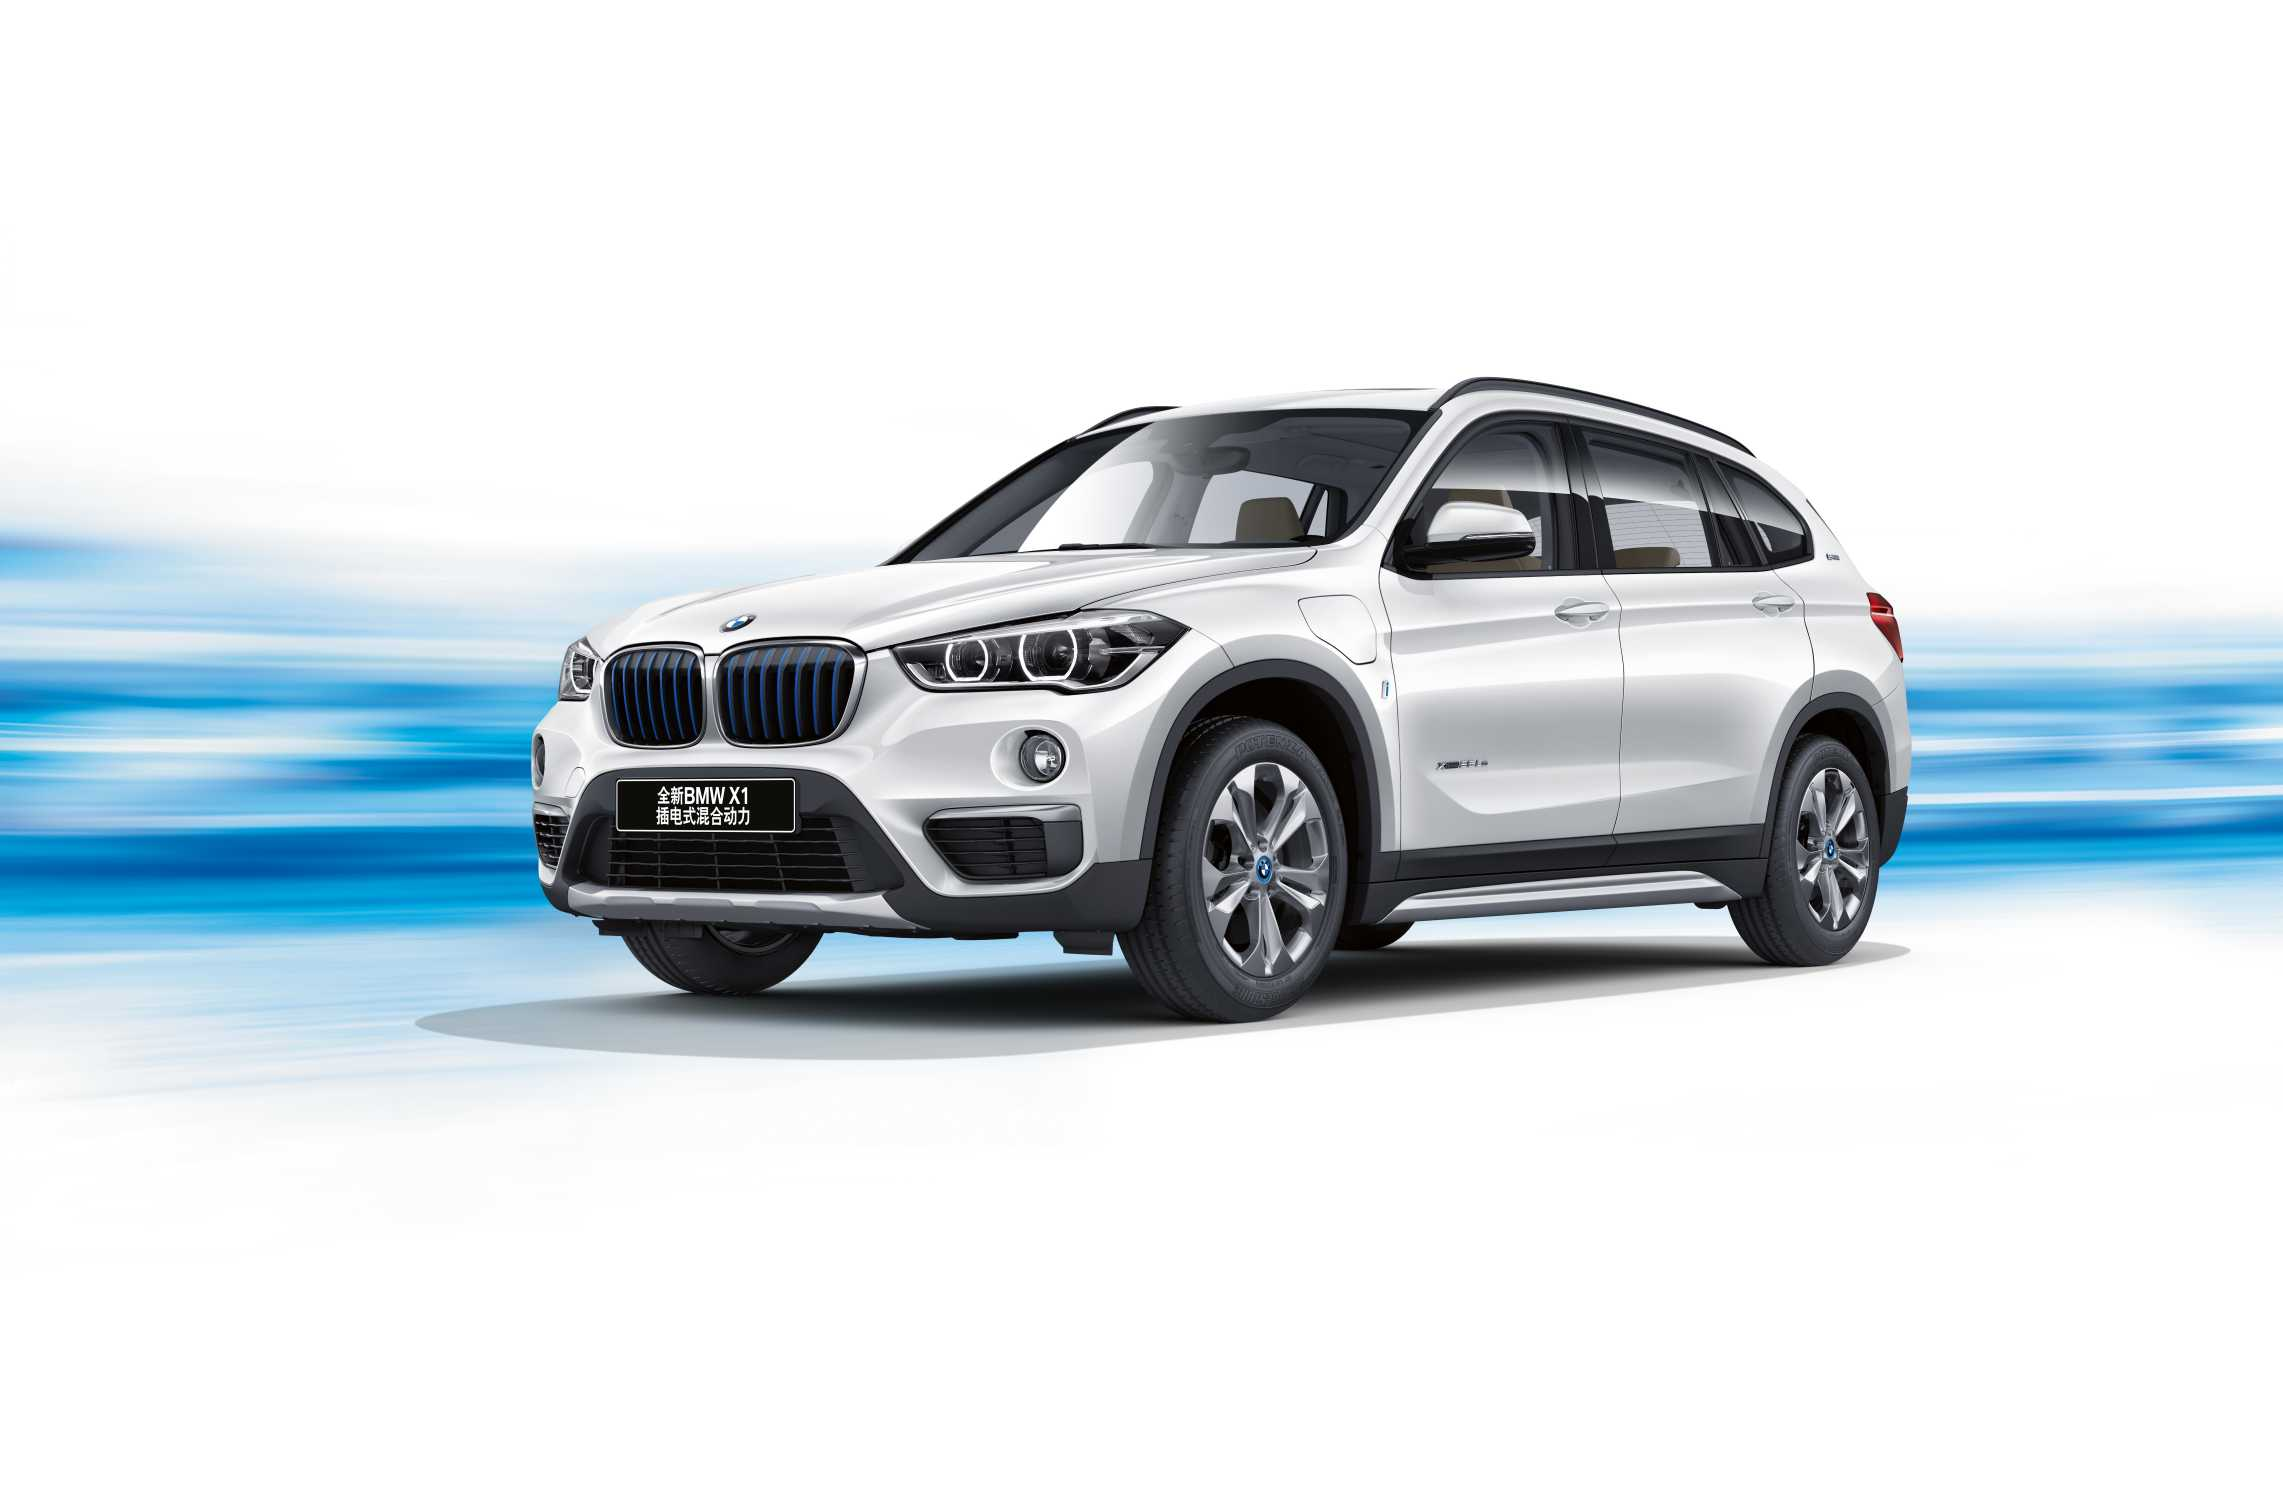 all new bmw x1 xdrive25le iperformance makes debut at. Black Bedroom Furniture Sets. Home Design Ideas